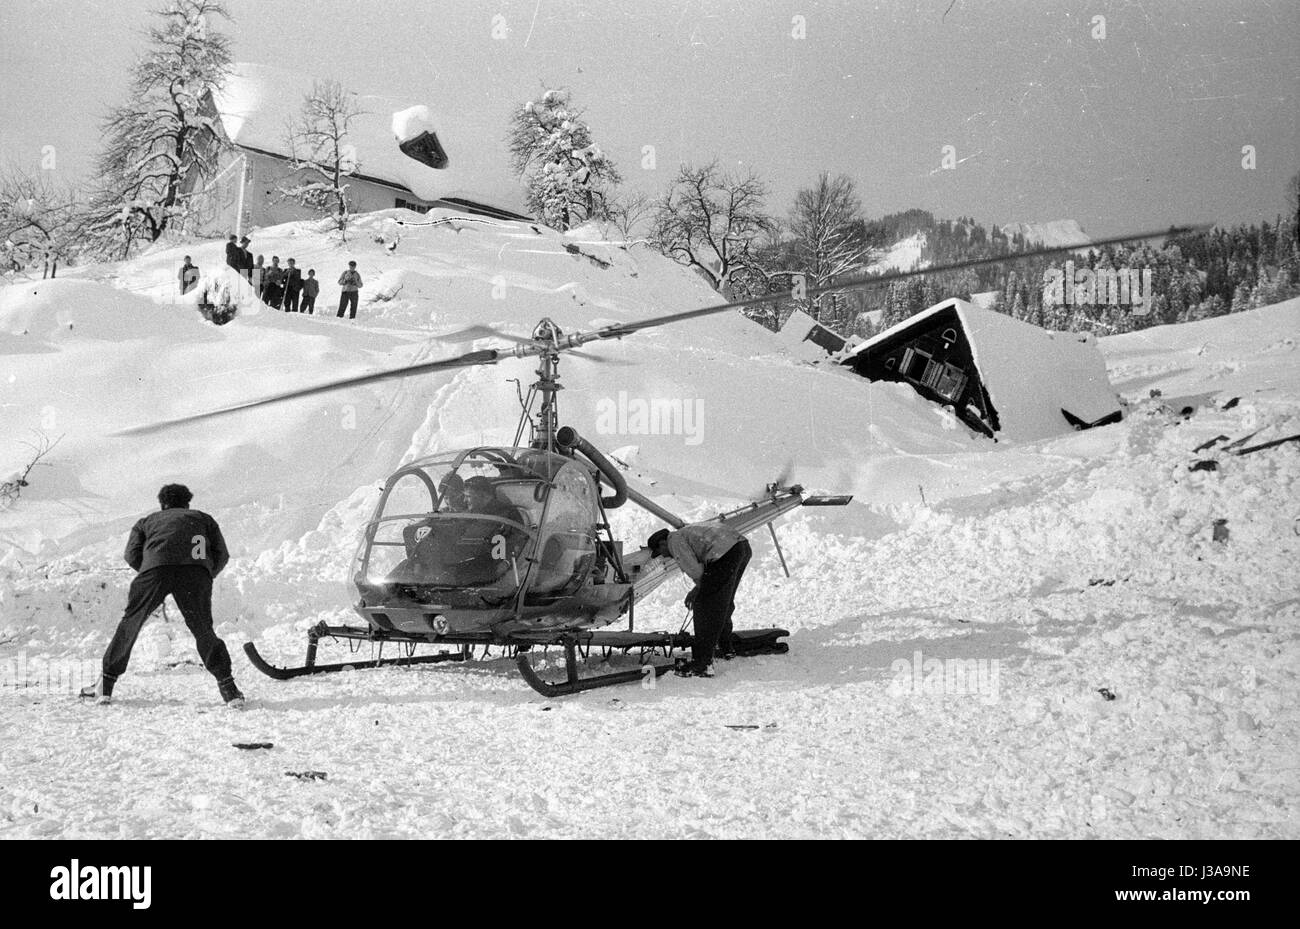 A rescue helicopter on a makeshift landing pad at Blons, 1954 - Stock Image